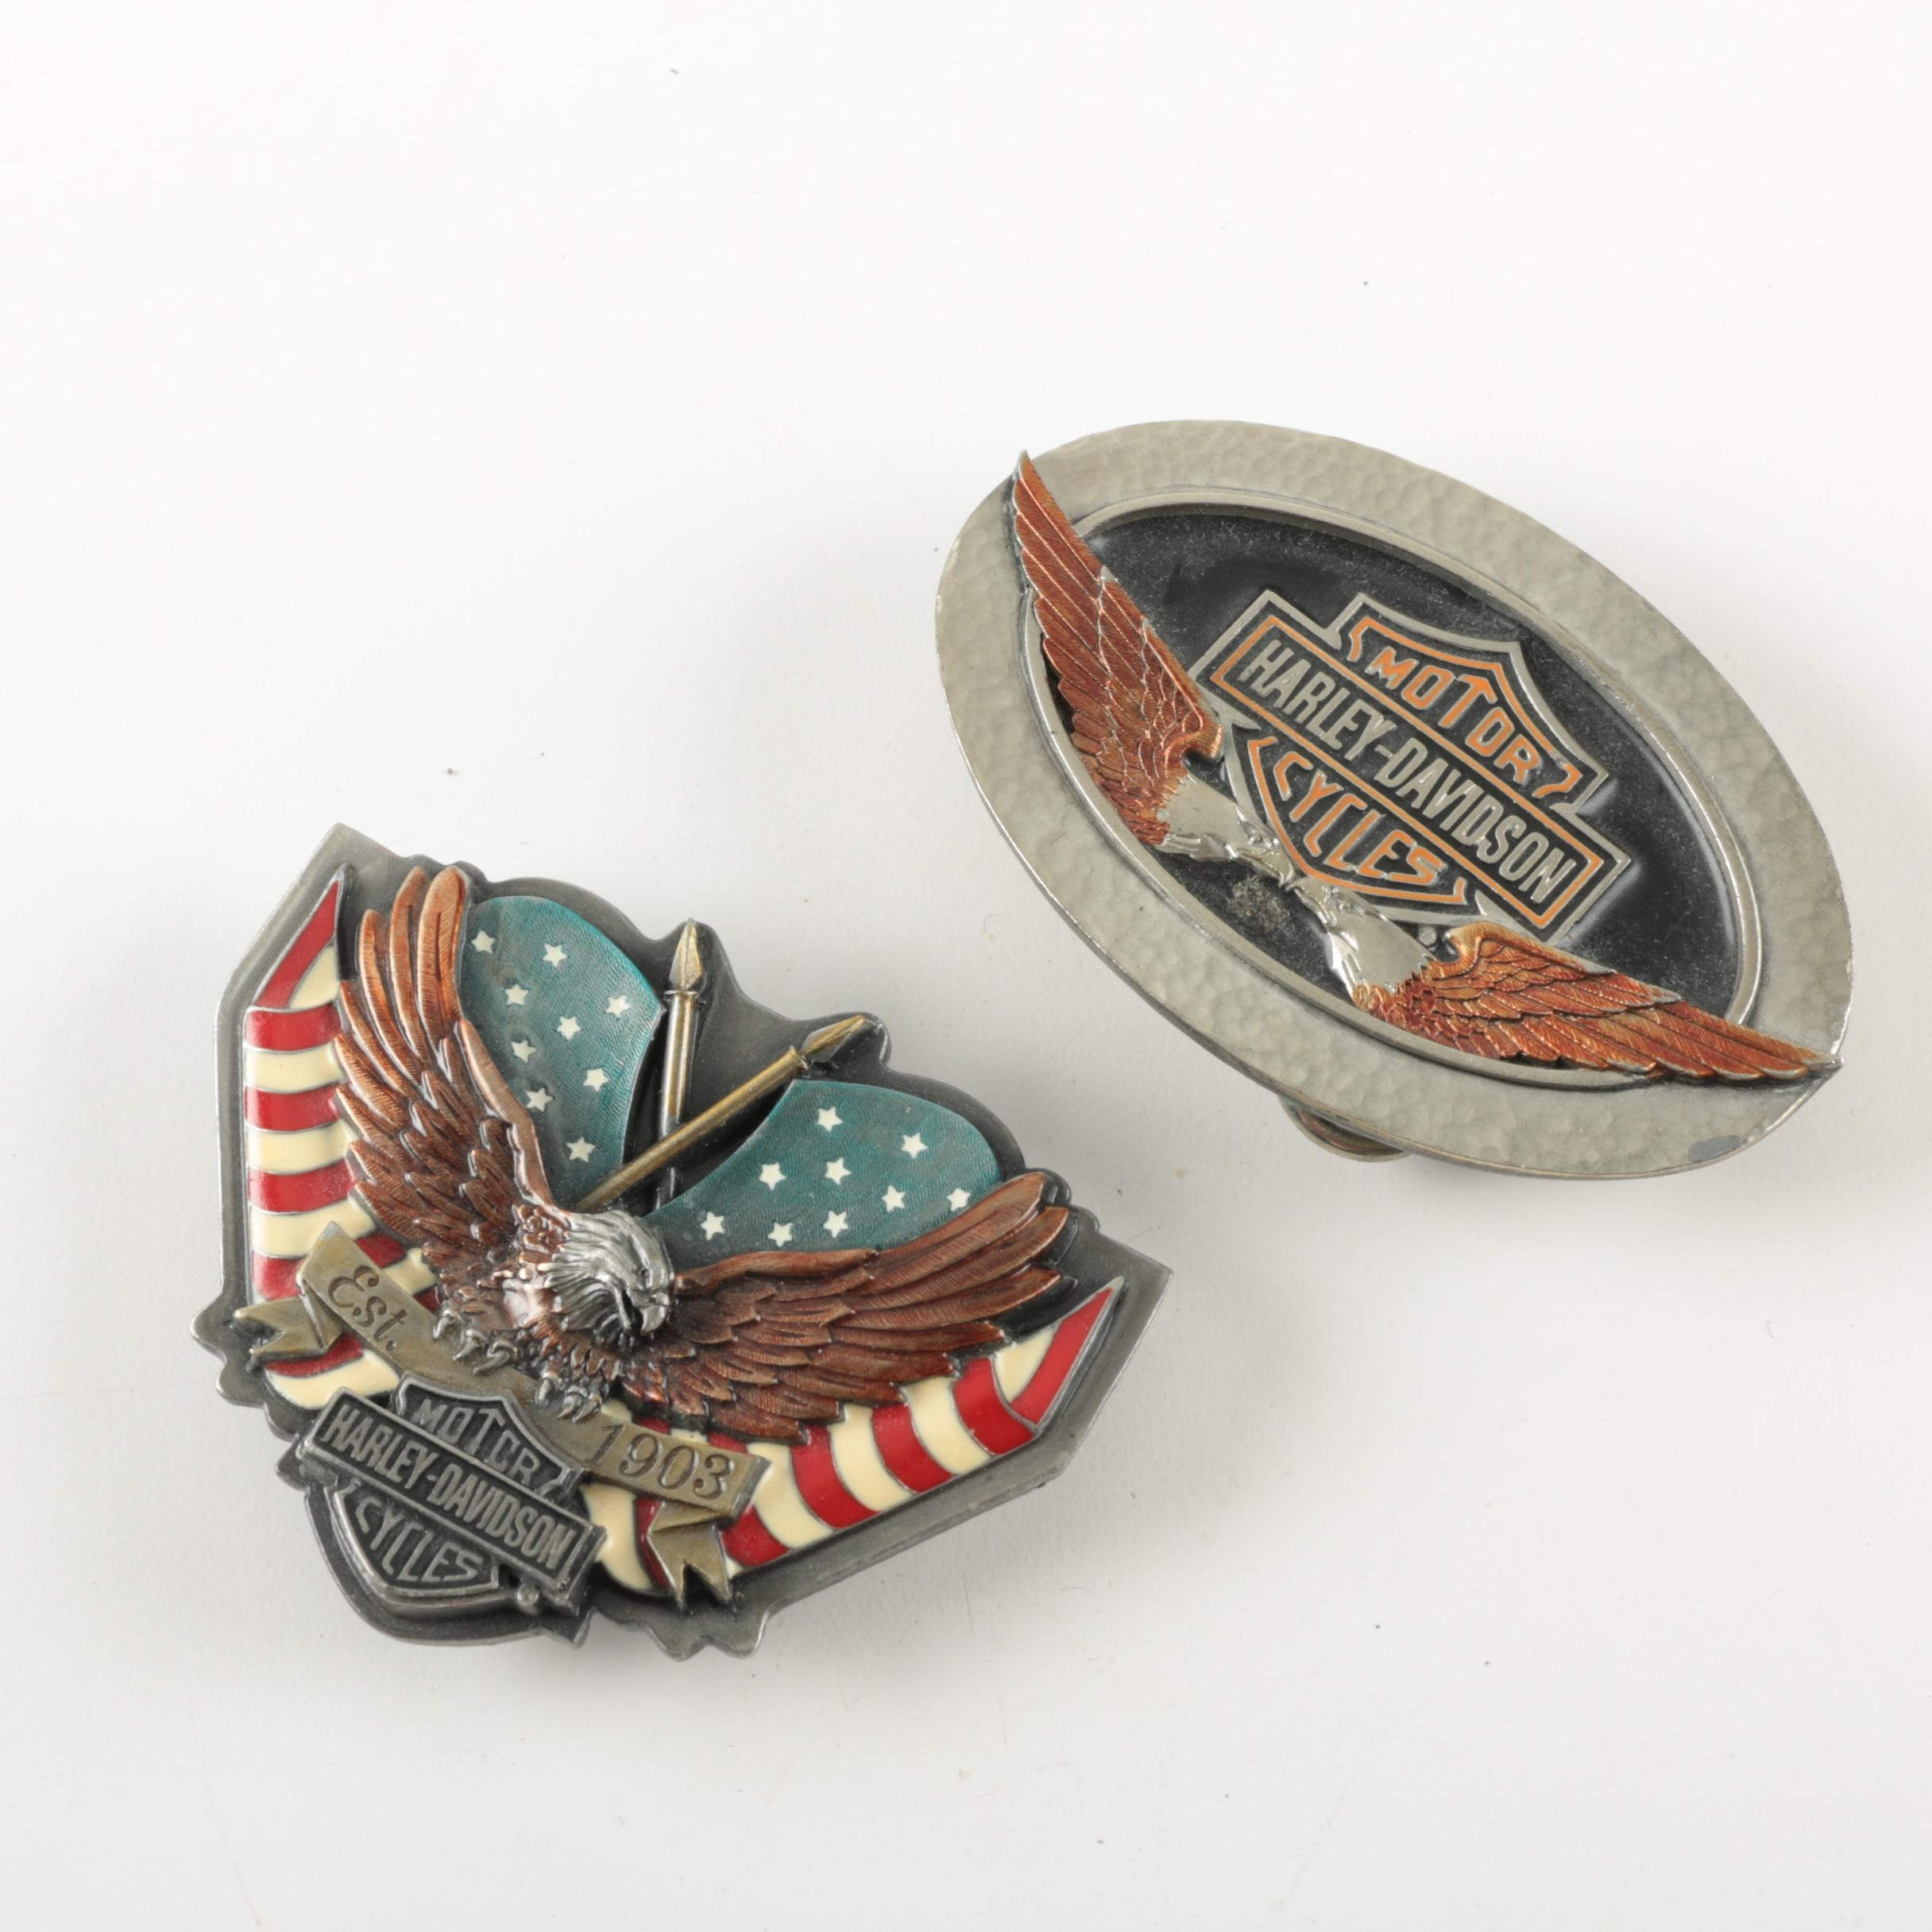 Two Harley Davidson Belt Buckles